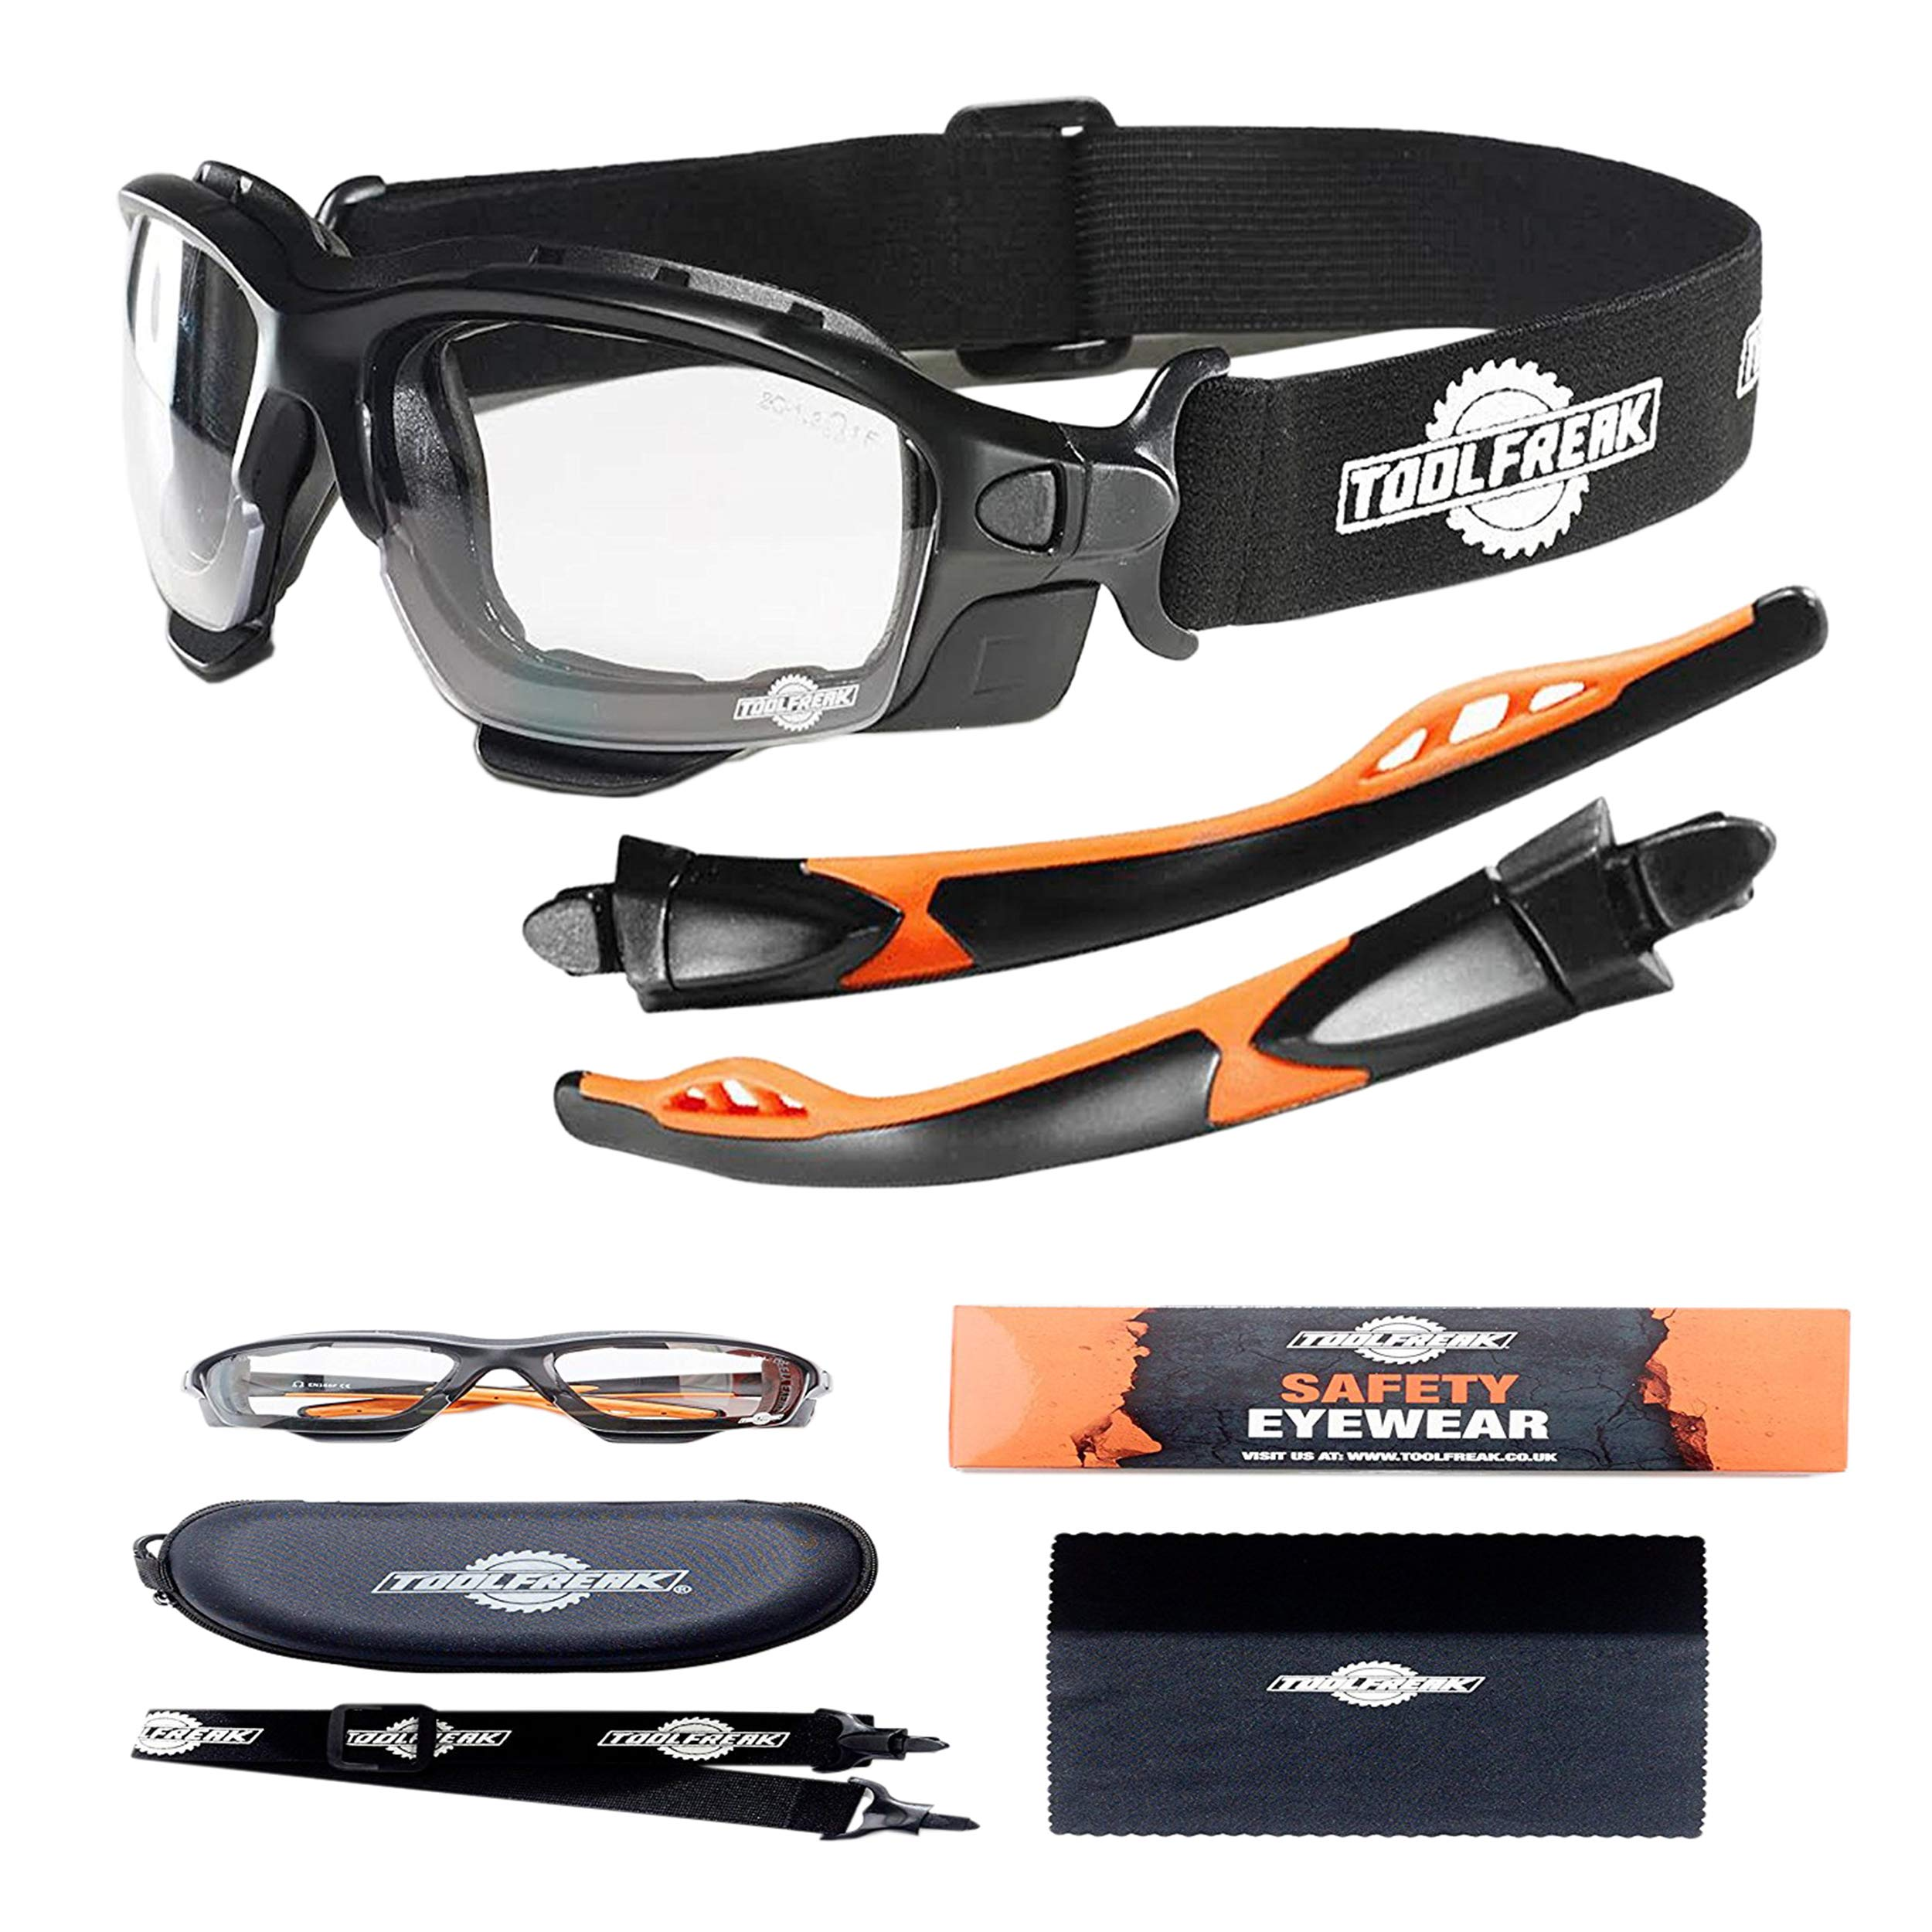 ToolFreak Spoggles, Safety Glasses and Protective Goggles, Eyewear Foam Padded for Comfort and Better Protection, ANSI Z87 Rated, Clear Lens with UV and Impact Protection by ToolFreak